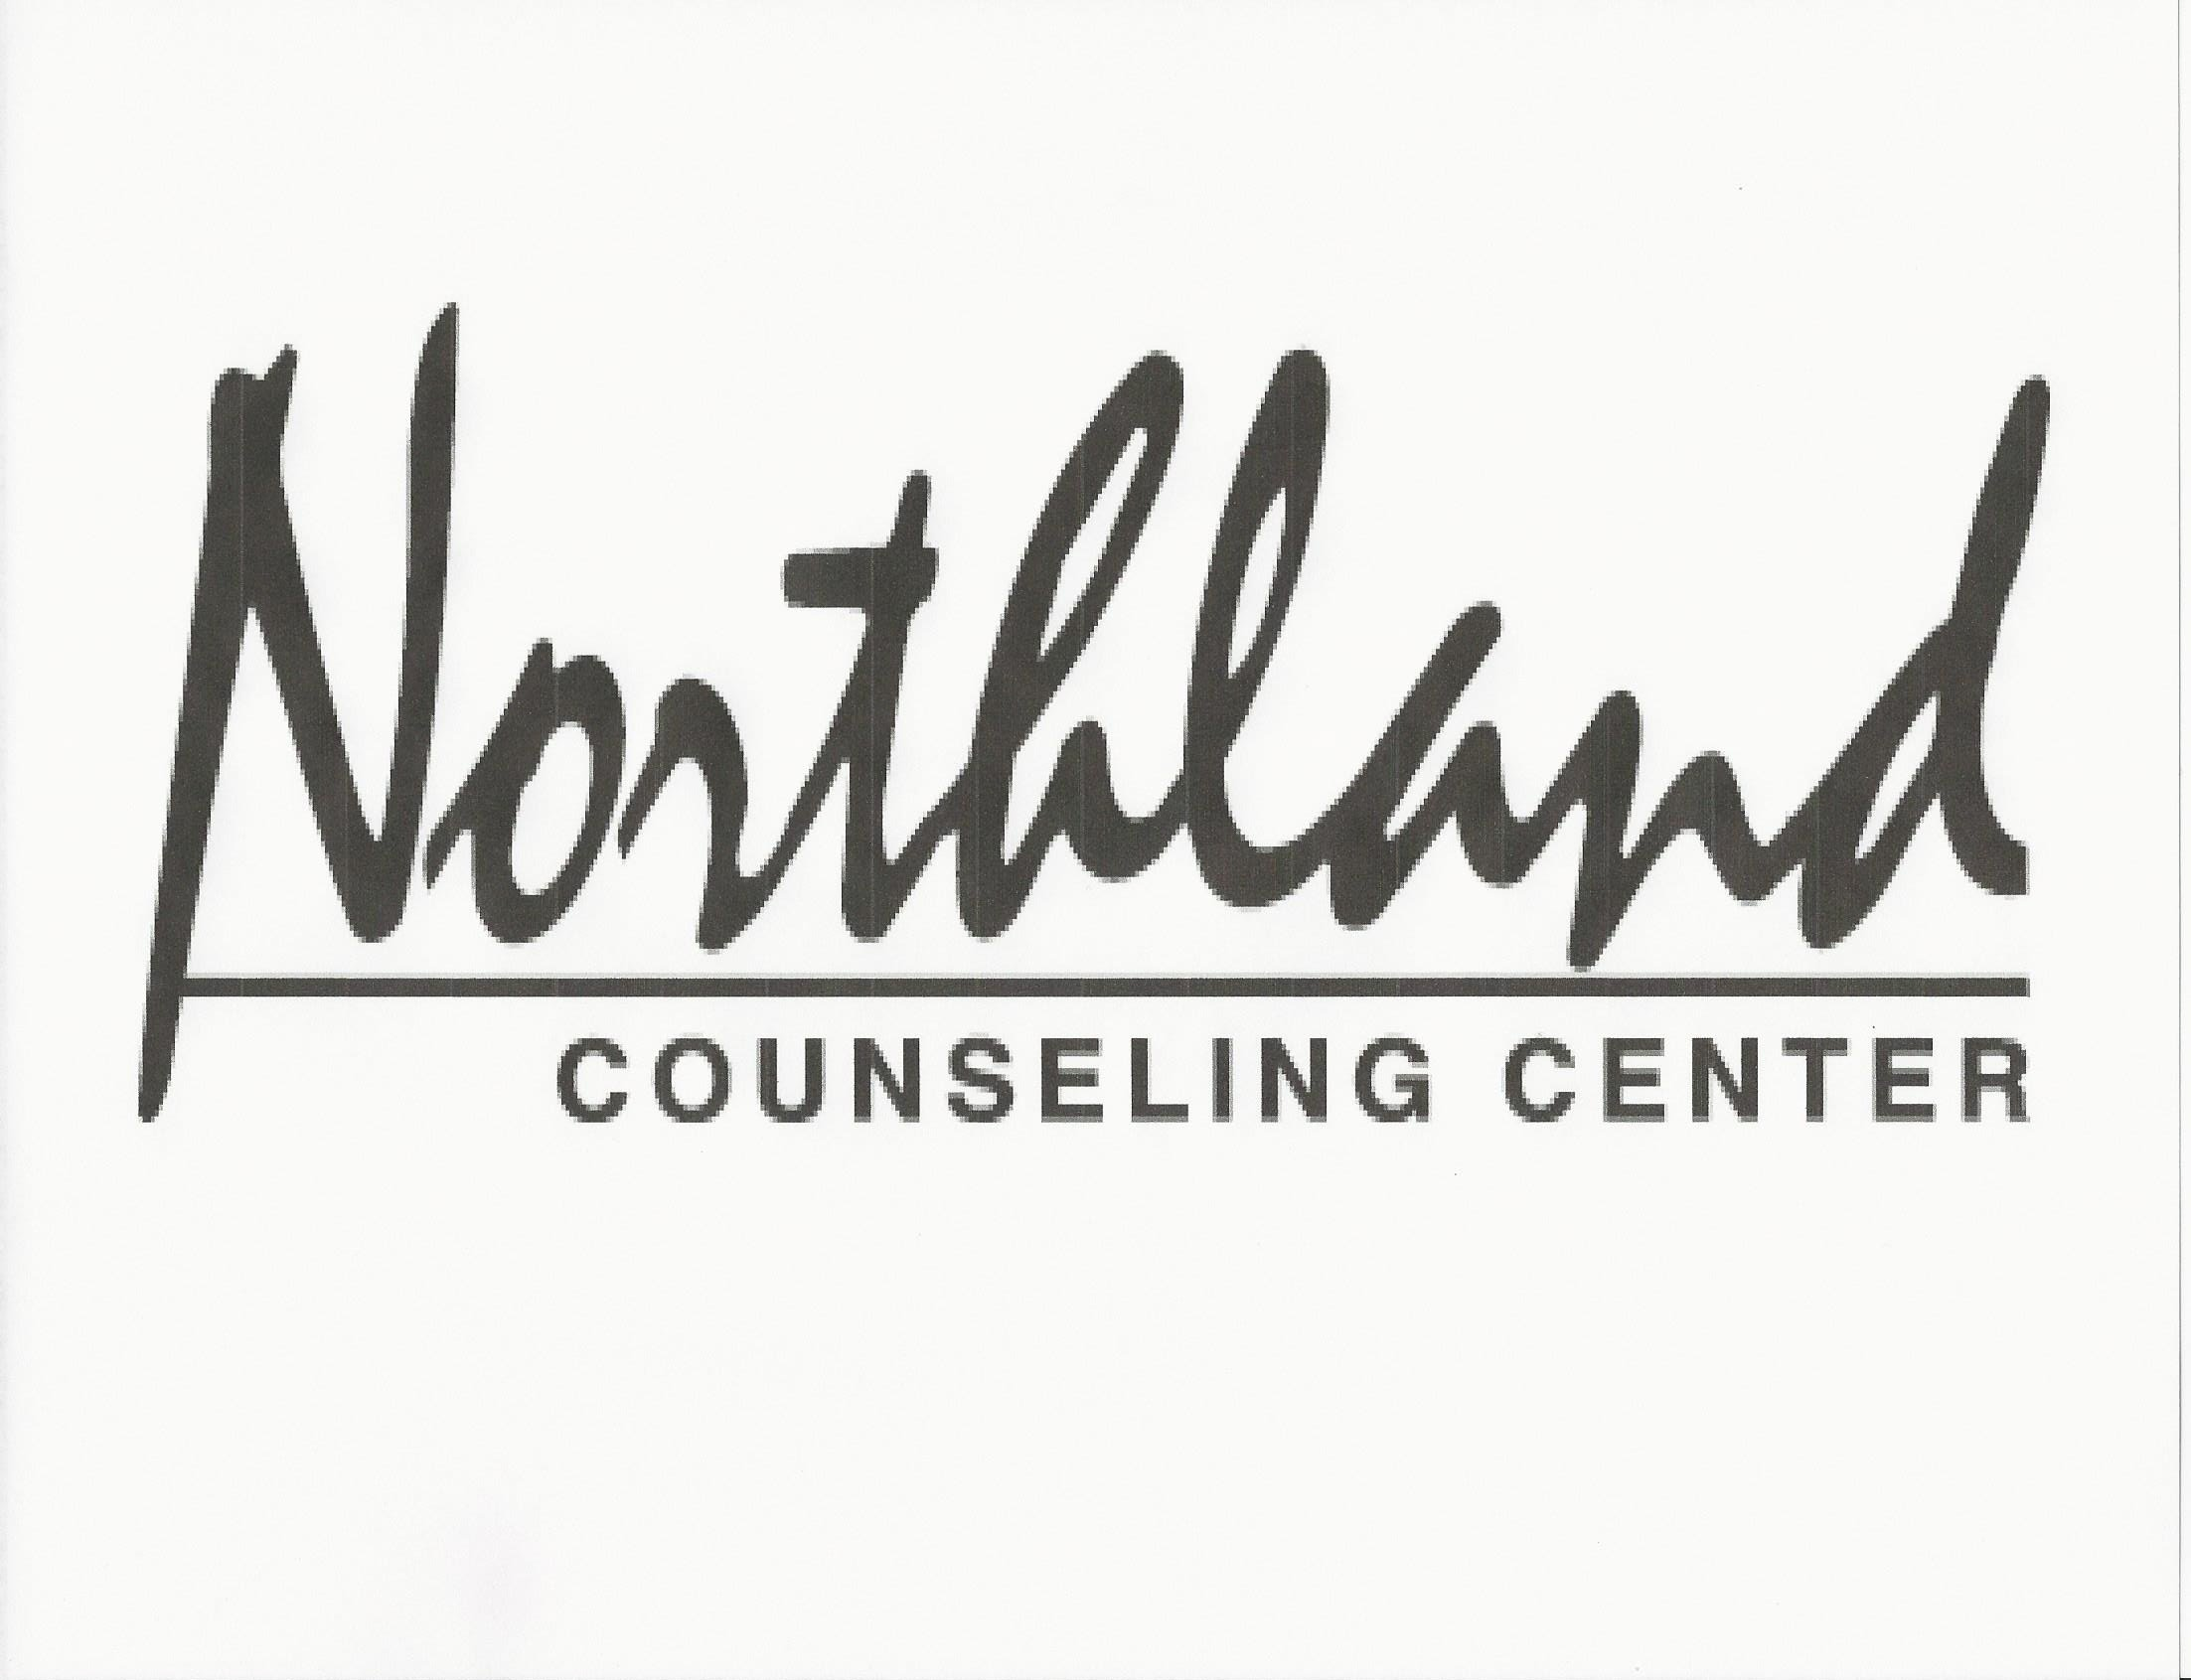 Northland Counseling